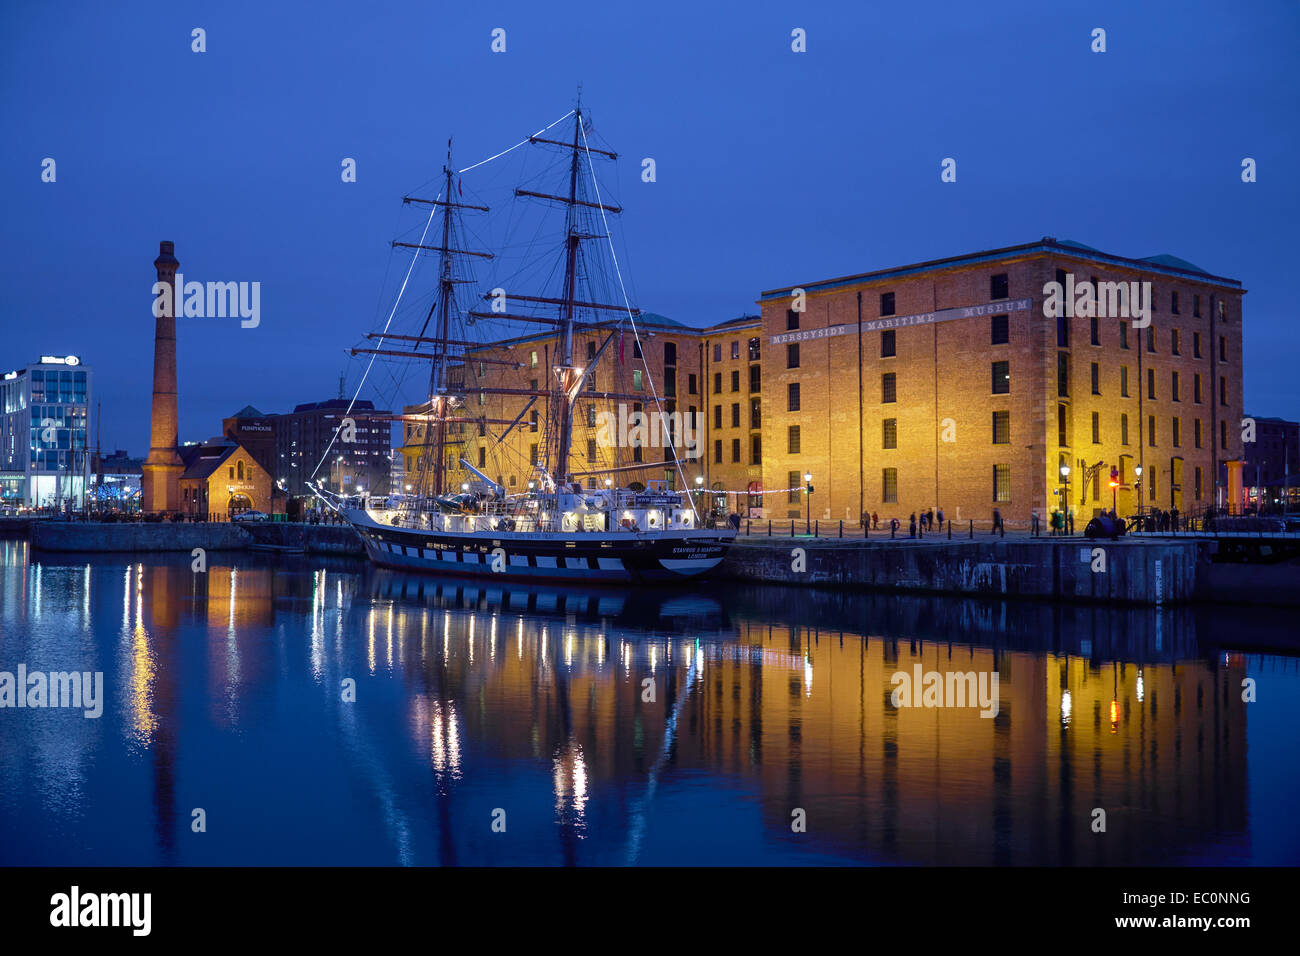 A tall ship outside the Merseyside Maritime Museum in Liverpool UK - Stock Image